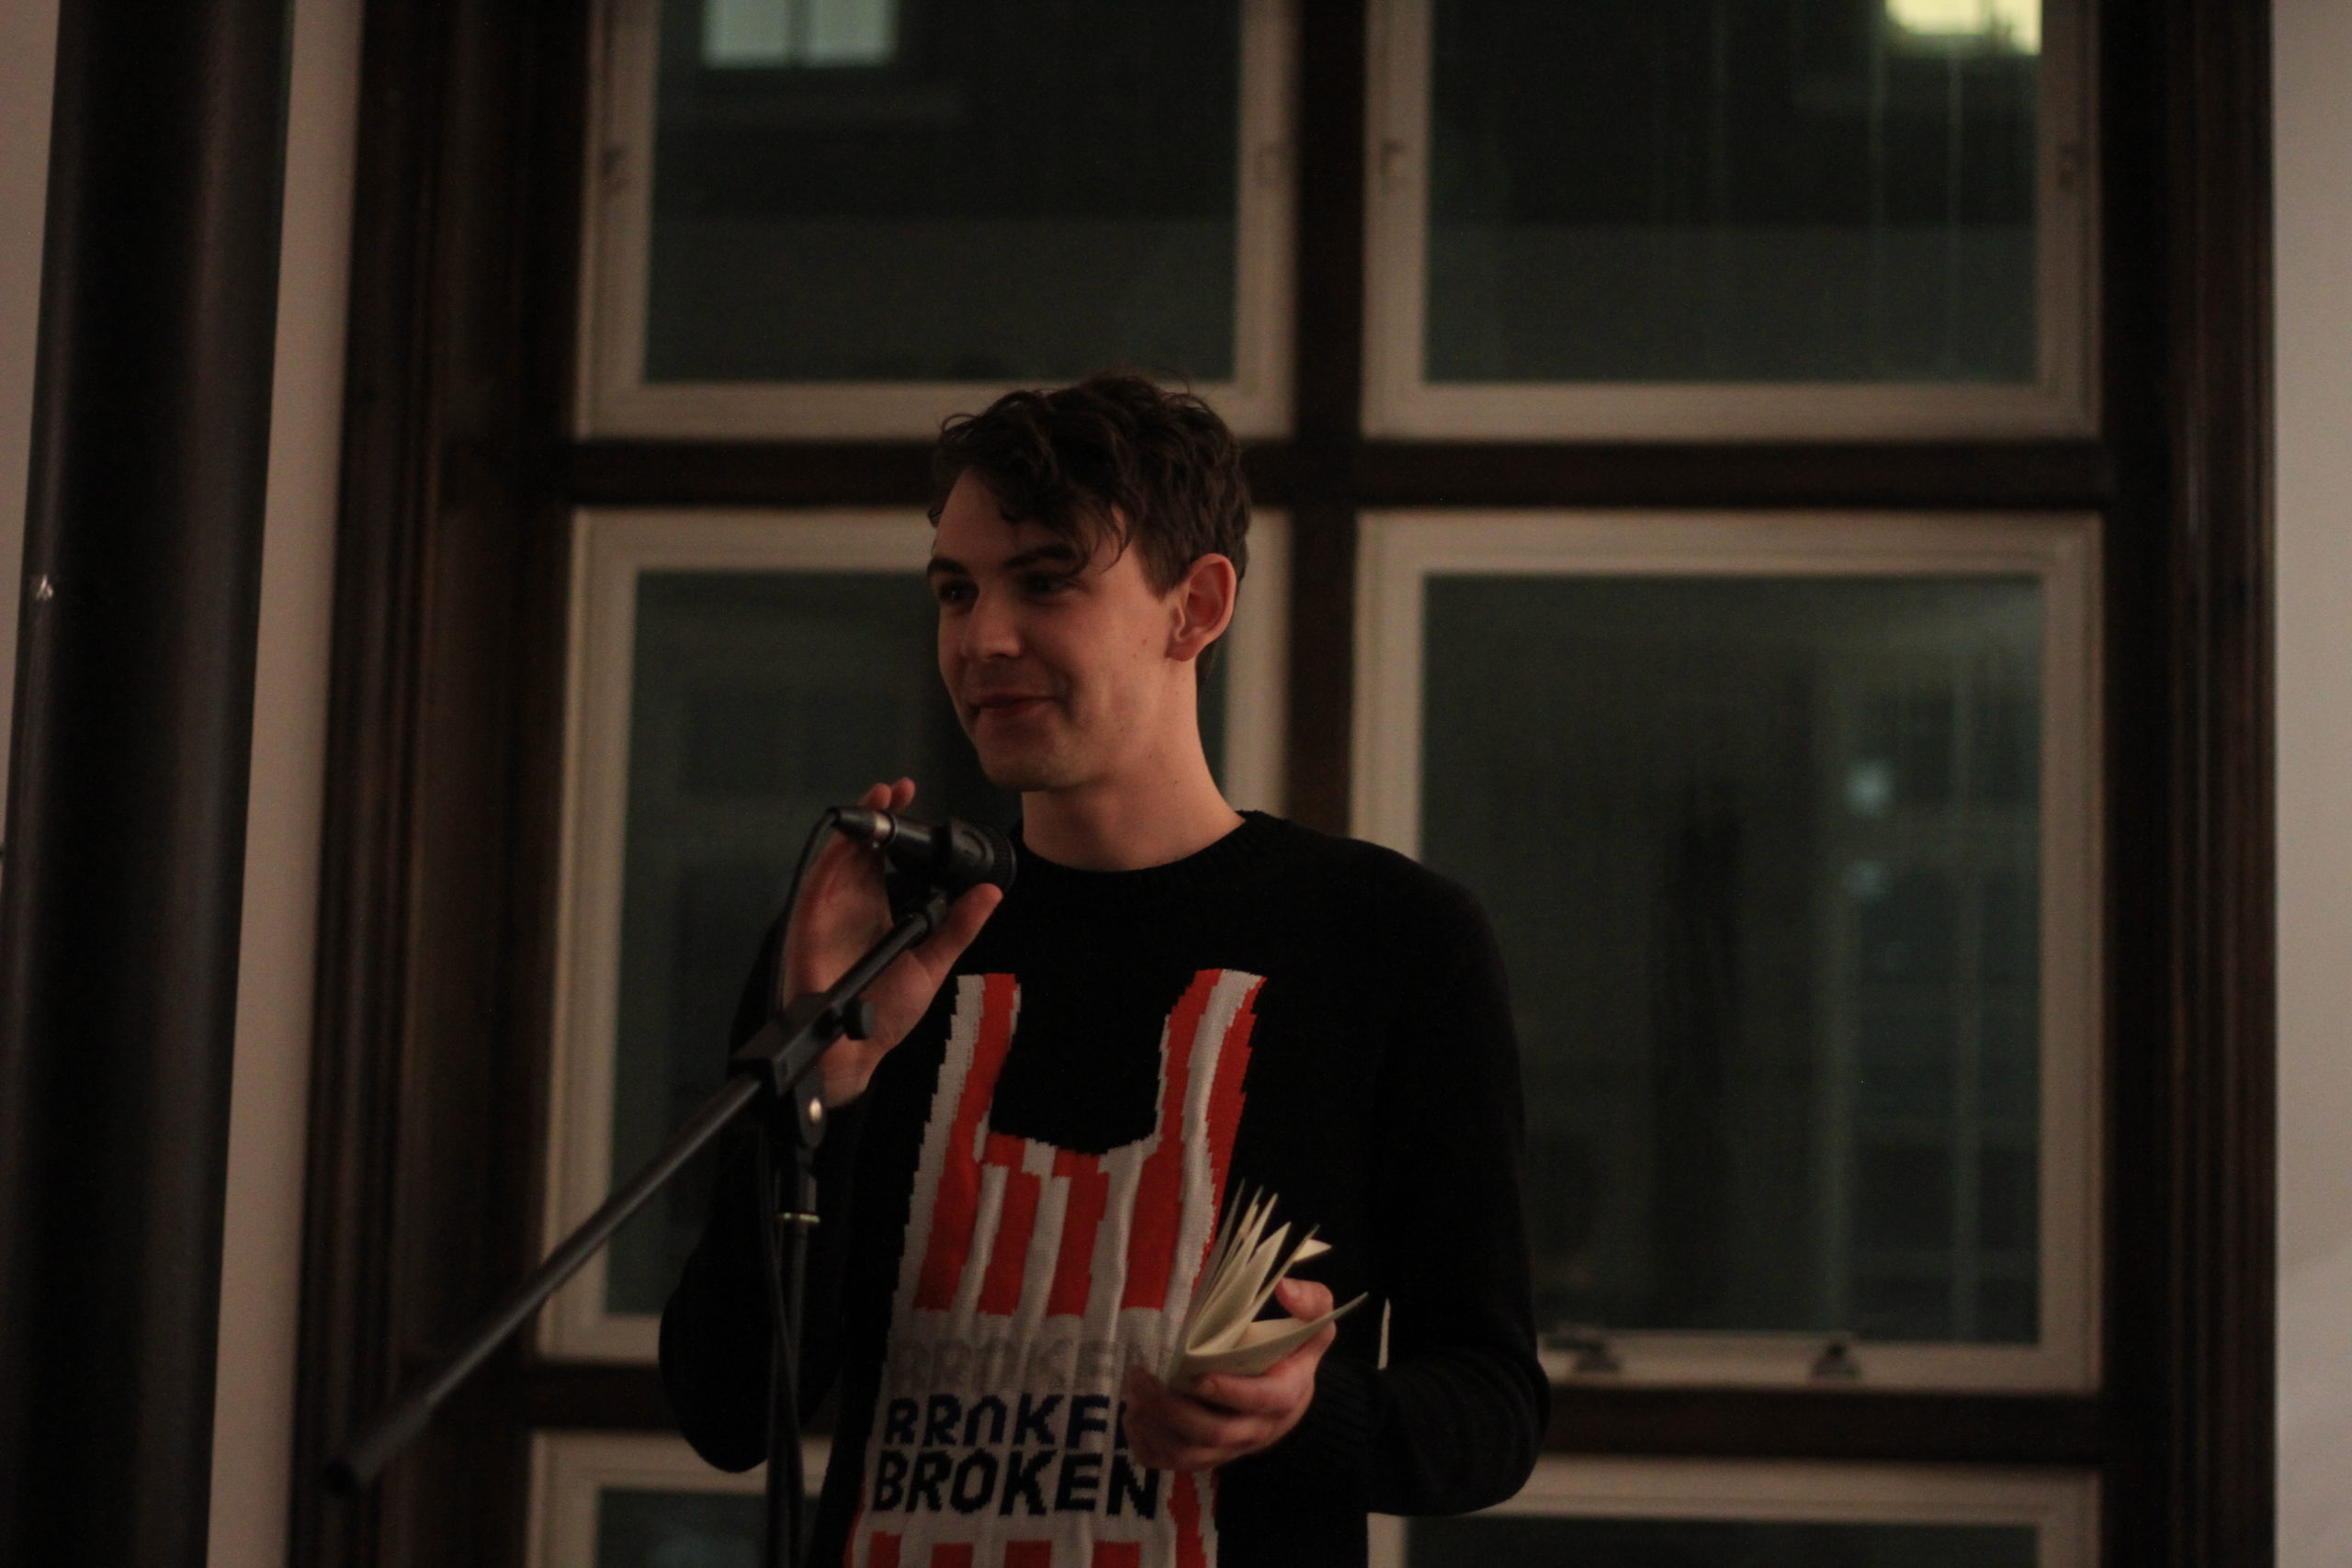 Photo of James Trevelyan reading in front of a microphone